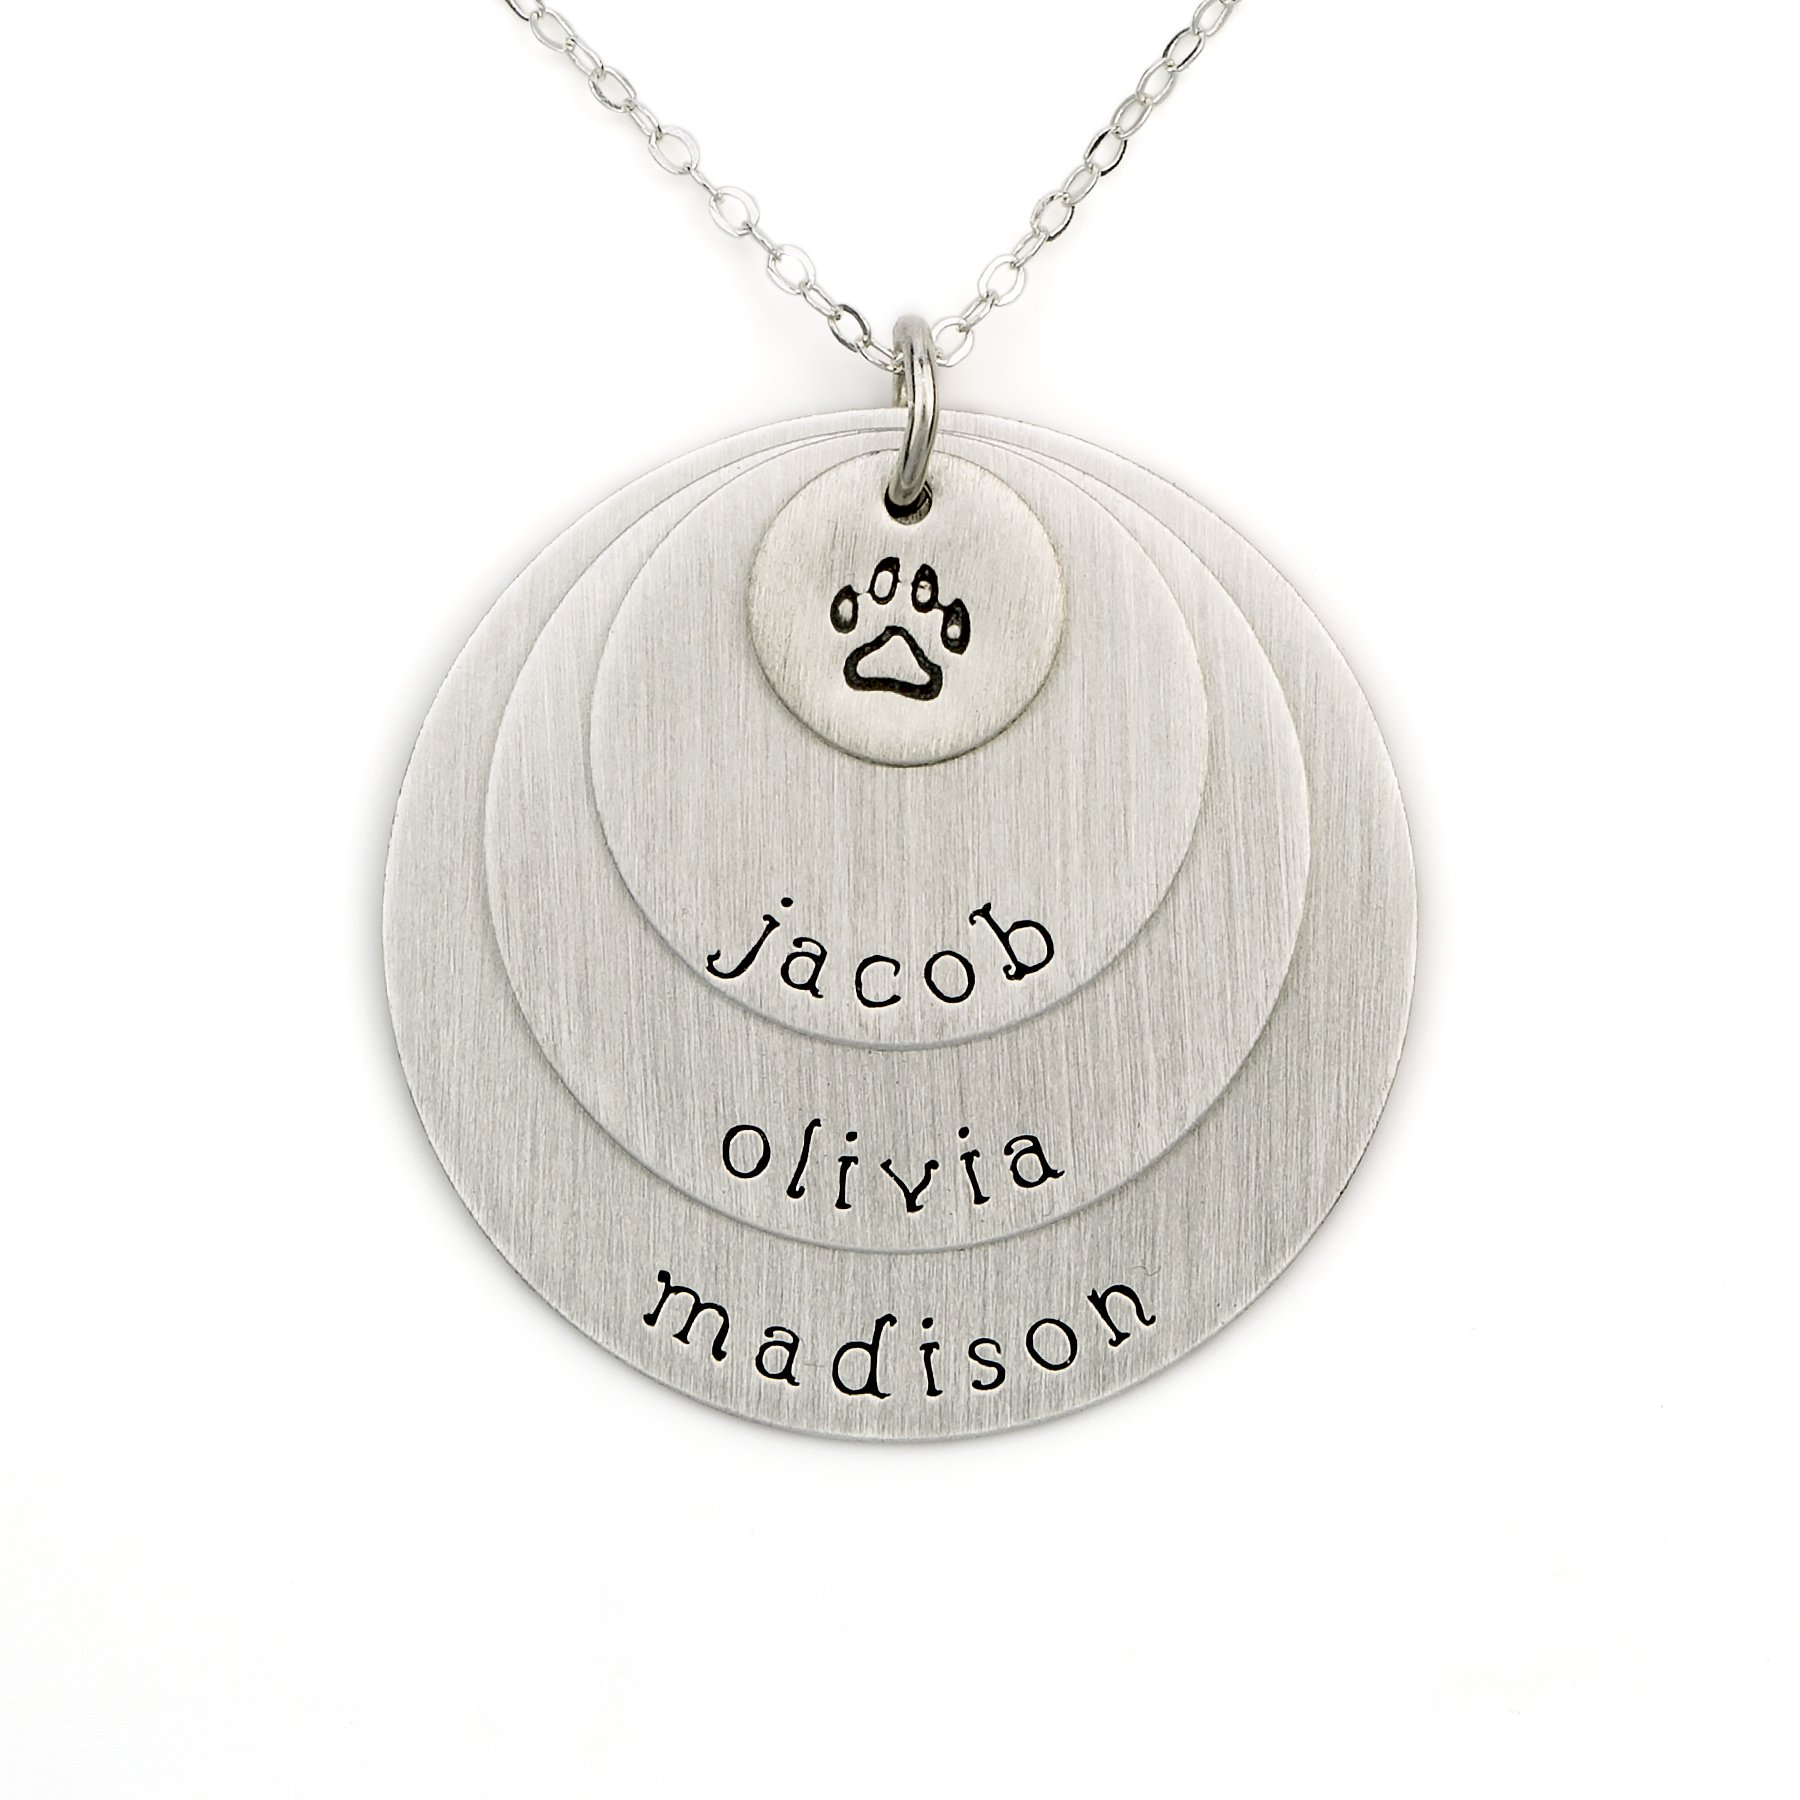 AJ's Collection Pawprint Personalized Sterling Silver Name Necklace. Customize with Your Choice of Pet Names. Matted Finish. Includes Sterling Silver Chain. Gifts for That Petlover in Your Life